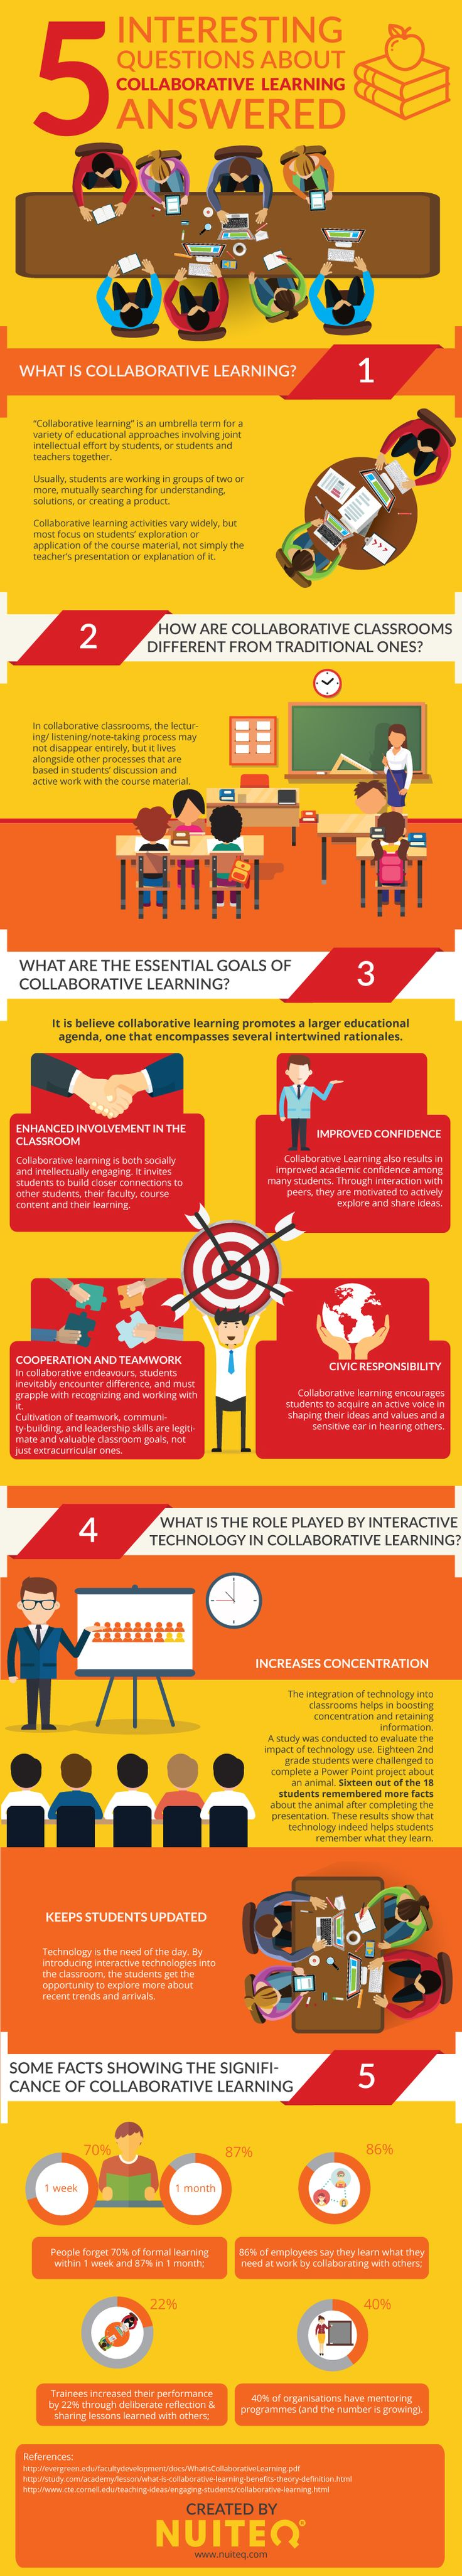 Questions and Answers about Collaborative Learning Infographic - http://elearninginfographics.com/questions-answers-collaborative-learning-infographic/